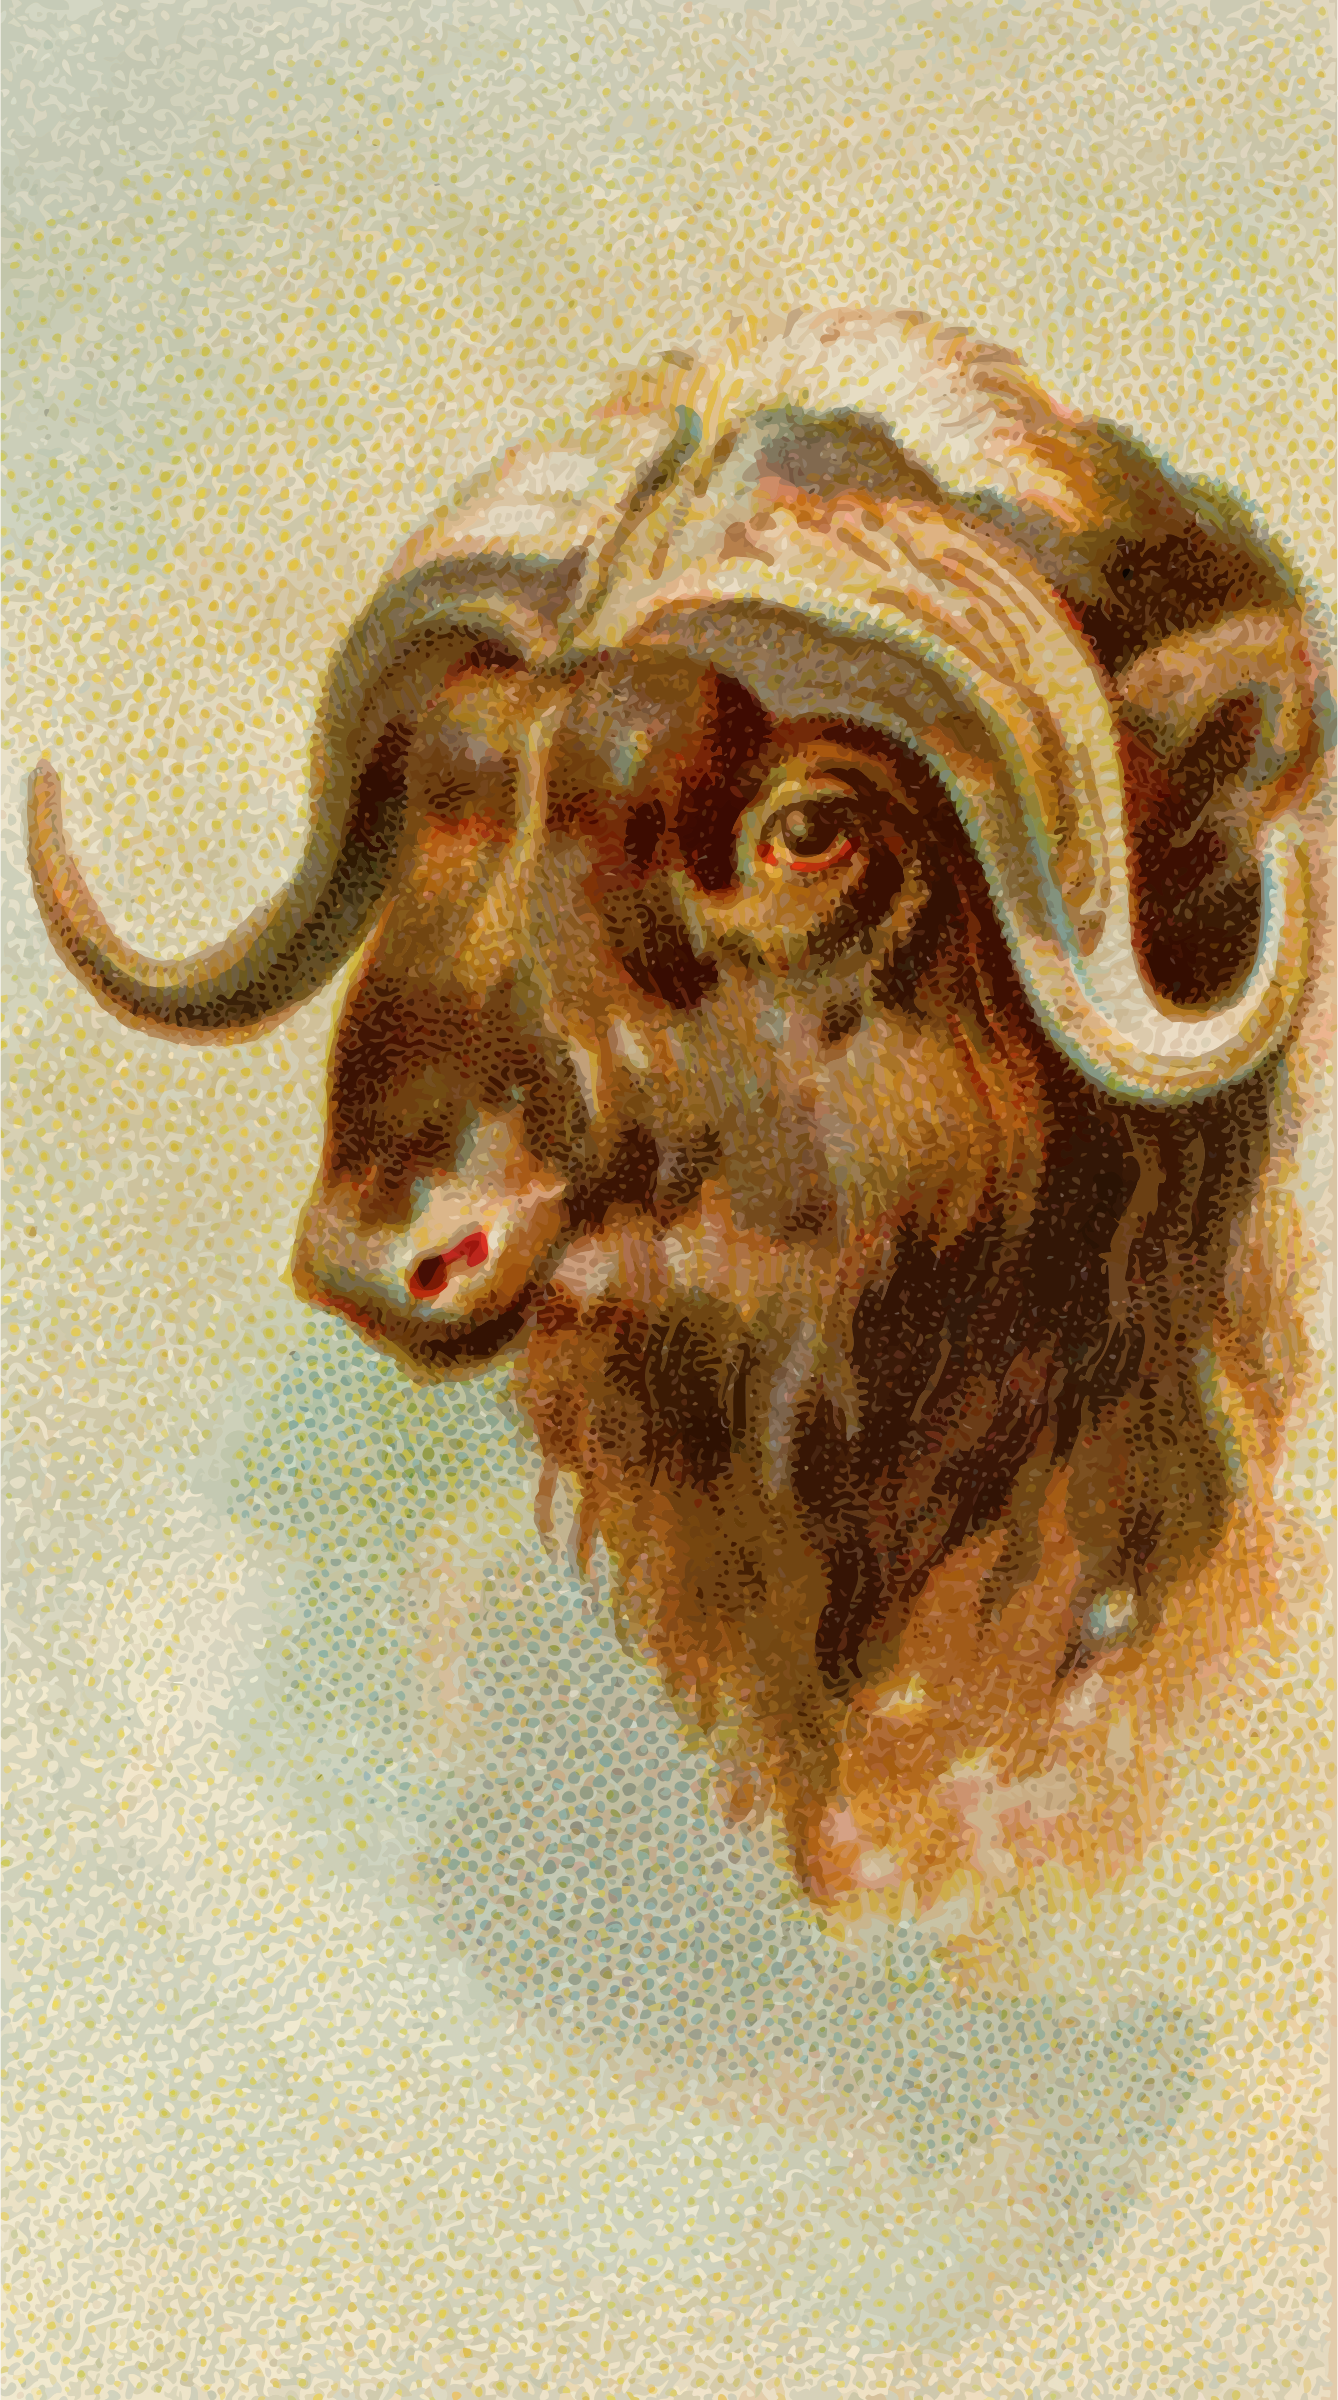 Cigarette card - Musk ox by Firkin